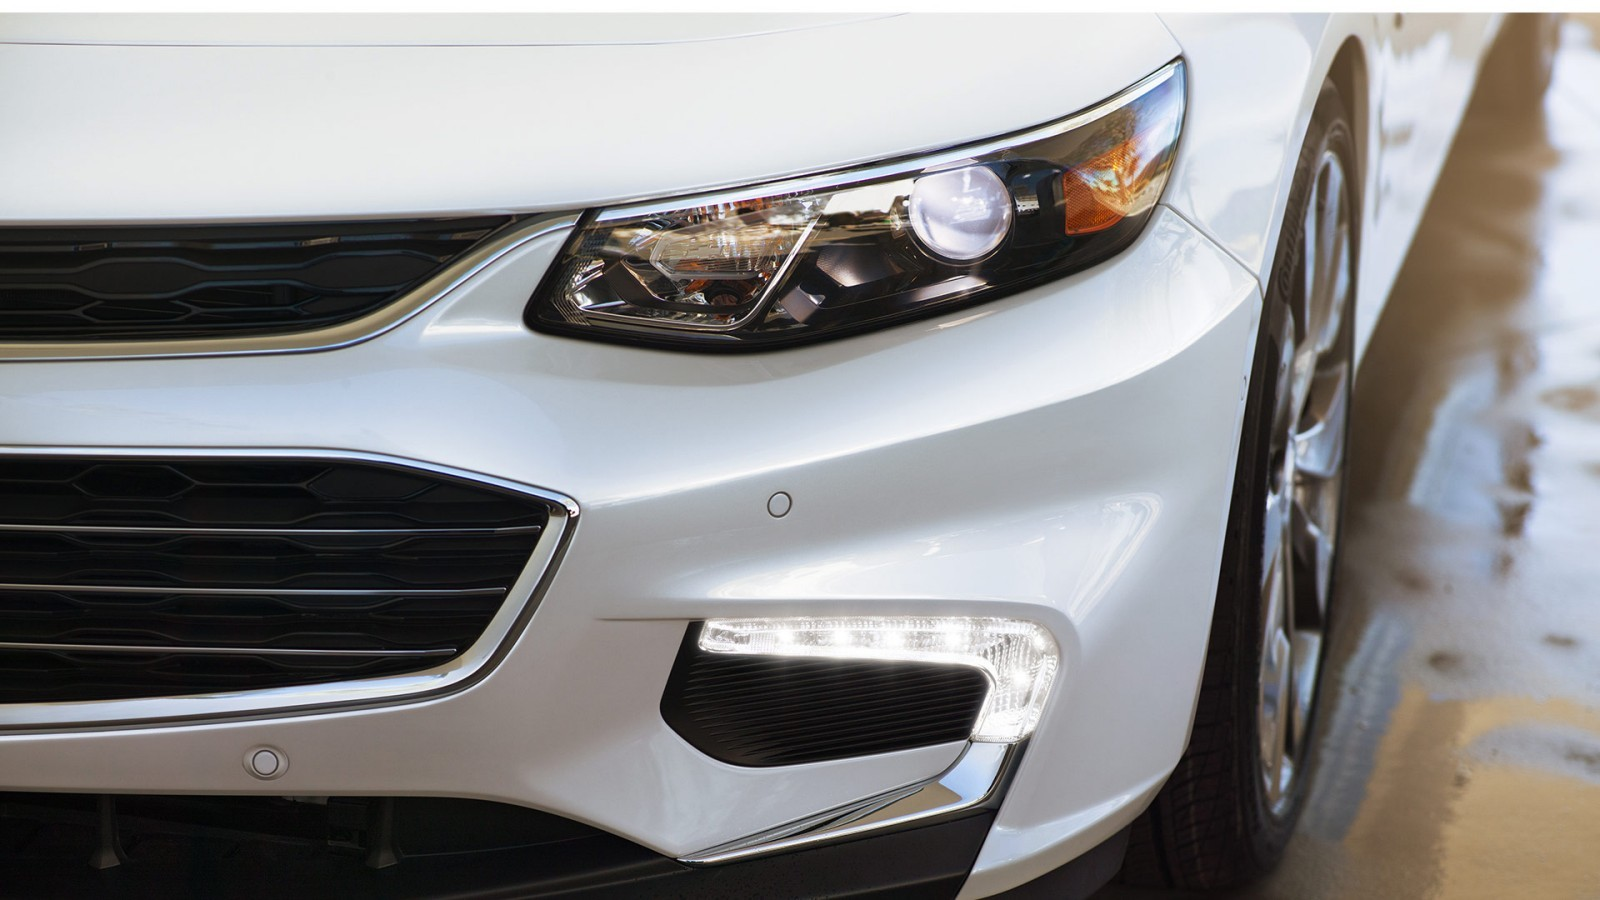 Redesigned headlamps on the 2016 Malibu